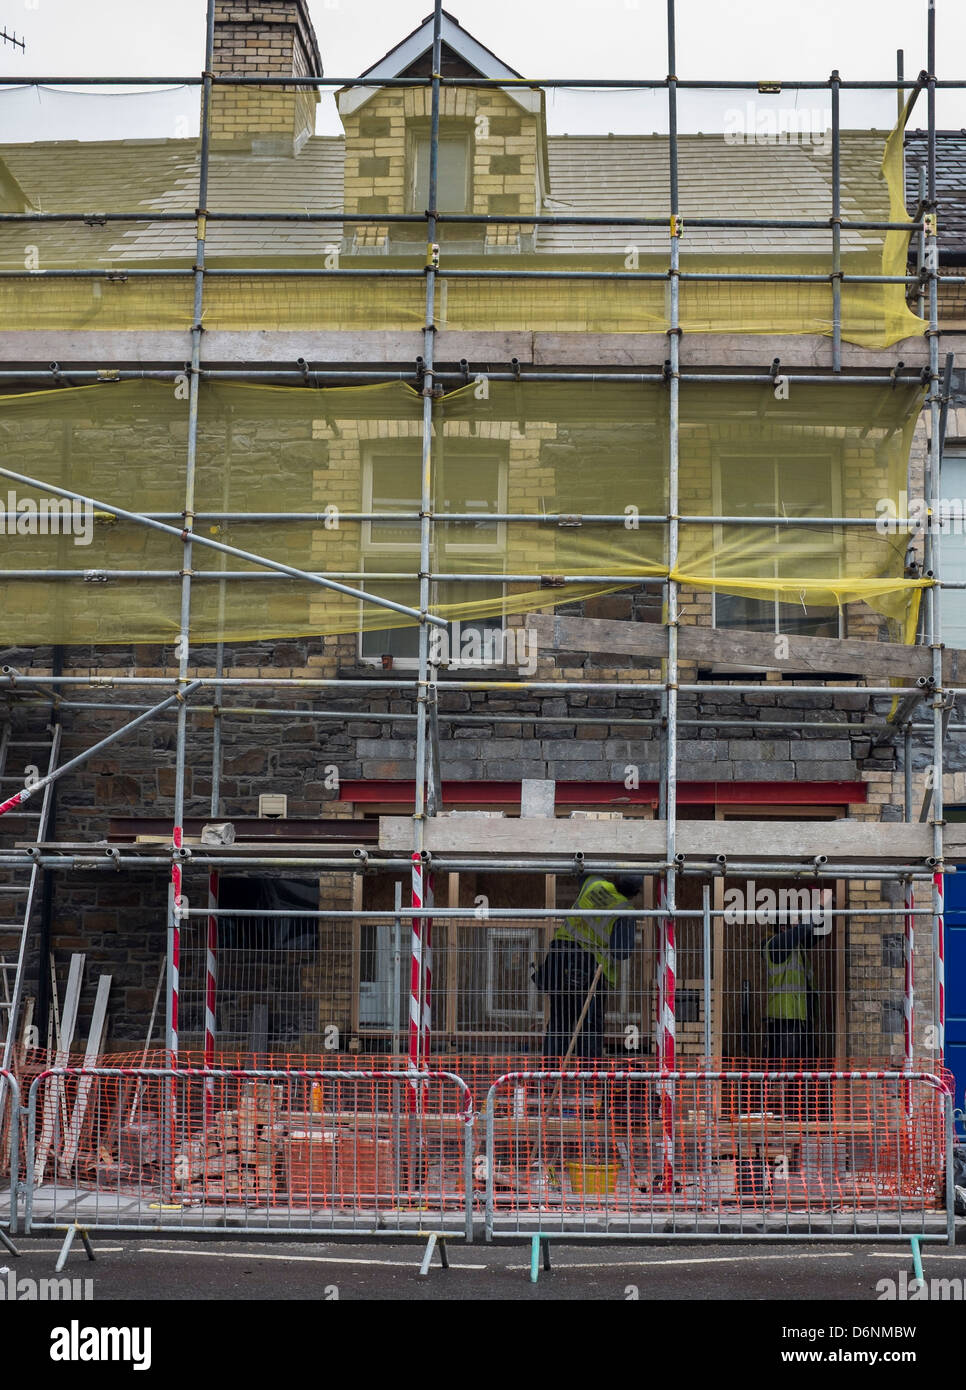 Scaffolding on a house being renovated as part of an urban renewal regeneration scheme Aberystwyth Wales UK - Stock Image